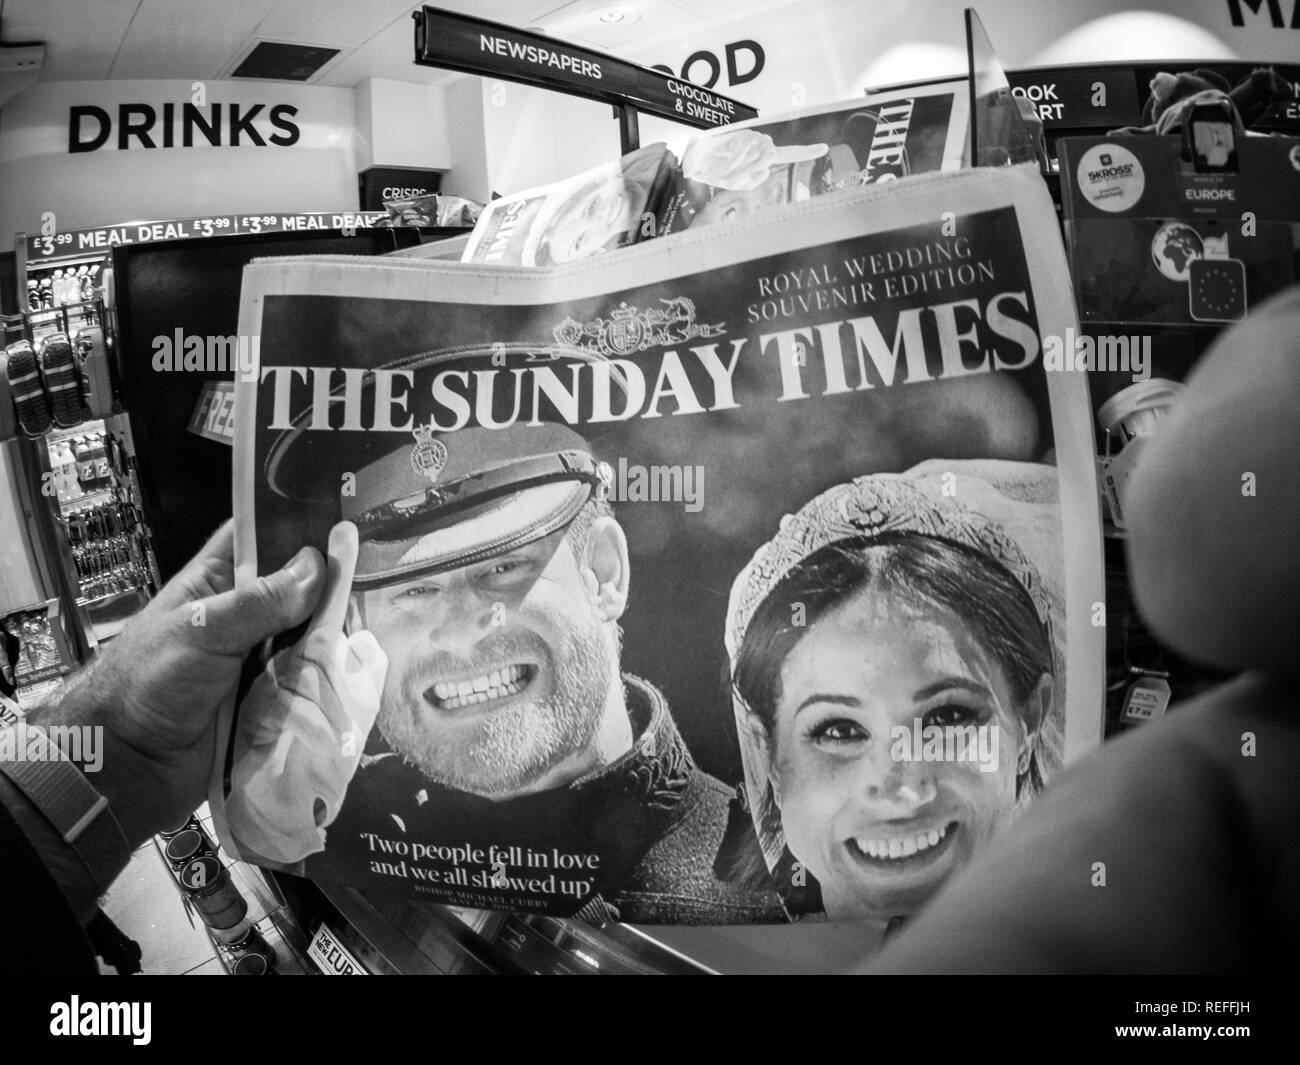 LONDON, ENGLAND - MAY 20, 2018: POV The Sunday Times front cover newspaper in British press kiosk featuring portraits of Prince Harry and Meghan Markle black and white ifestyle event - Stock Image